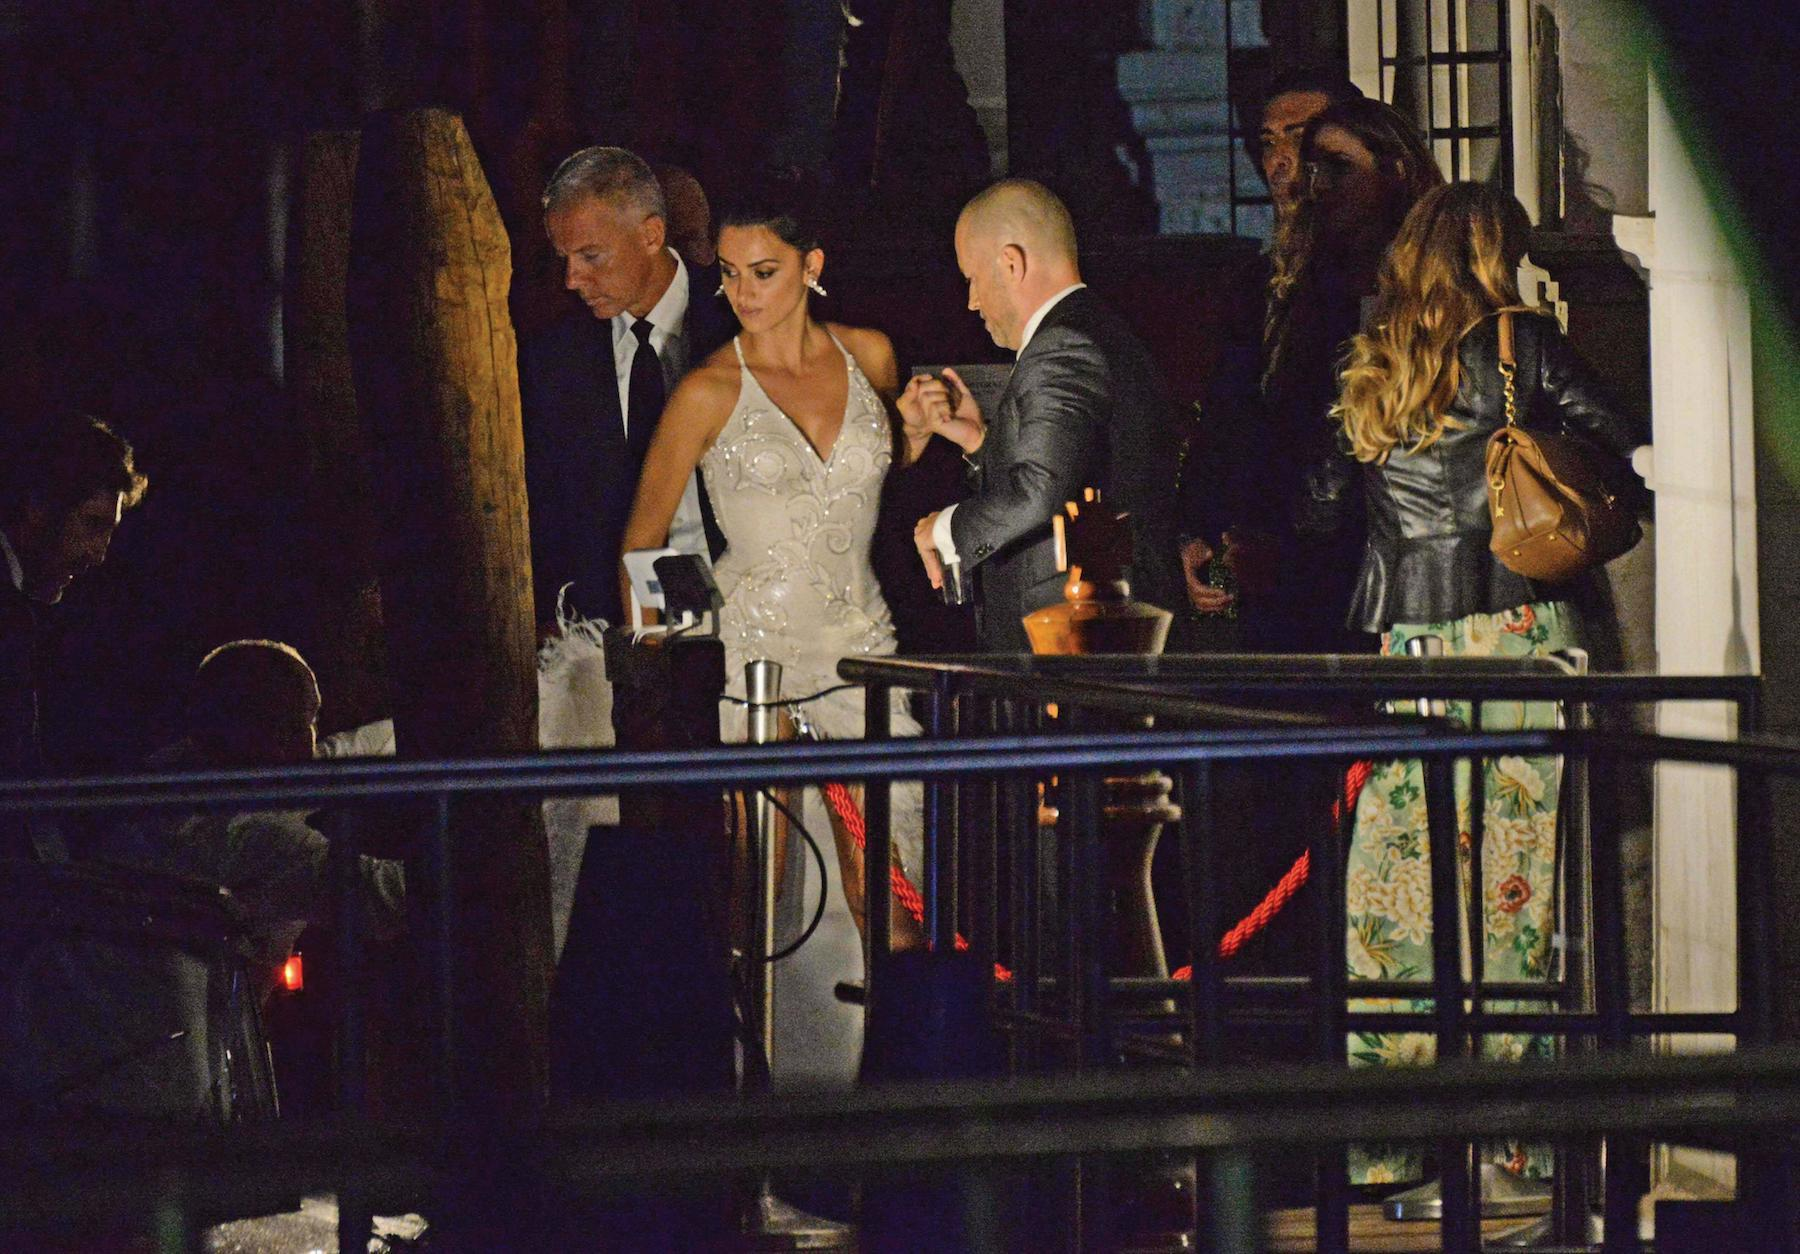 "Venezia, 06/09/2017 - Dinner party at Club Palazzina movie ""Loving Pablo"" by Fernando Leon de Aranao - Penelope Cruz and Javier Bardem get off the taxi-boat to dinner party ©Marco Sabadin/Vision"